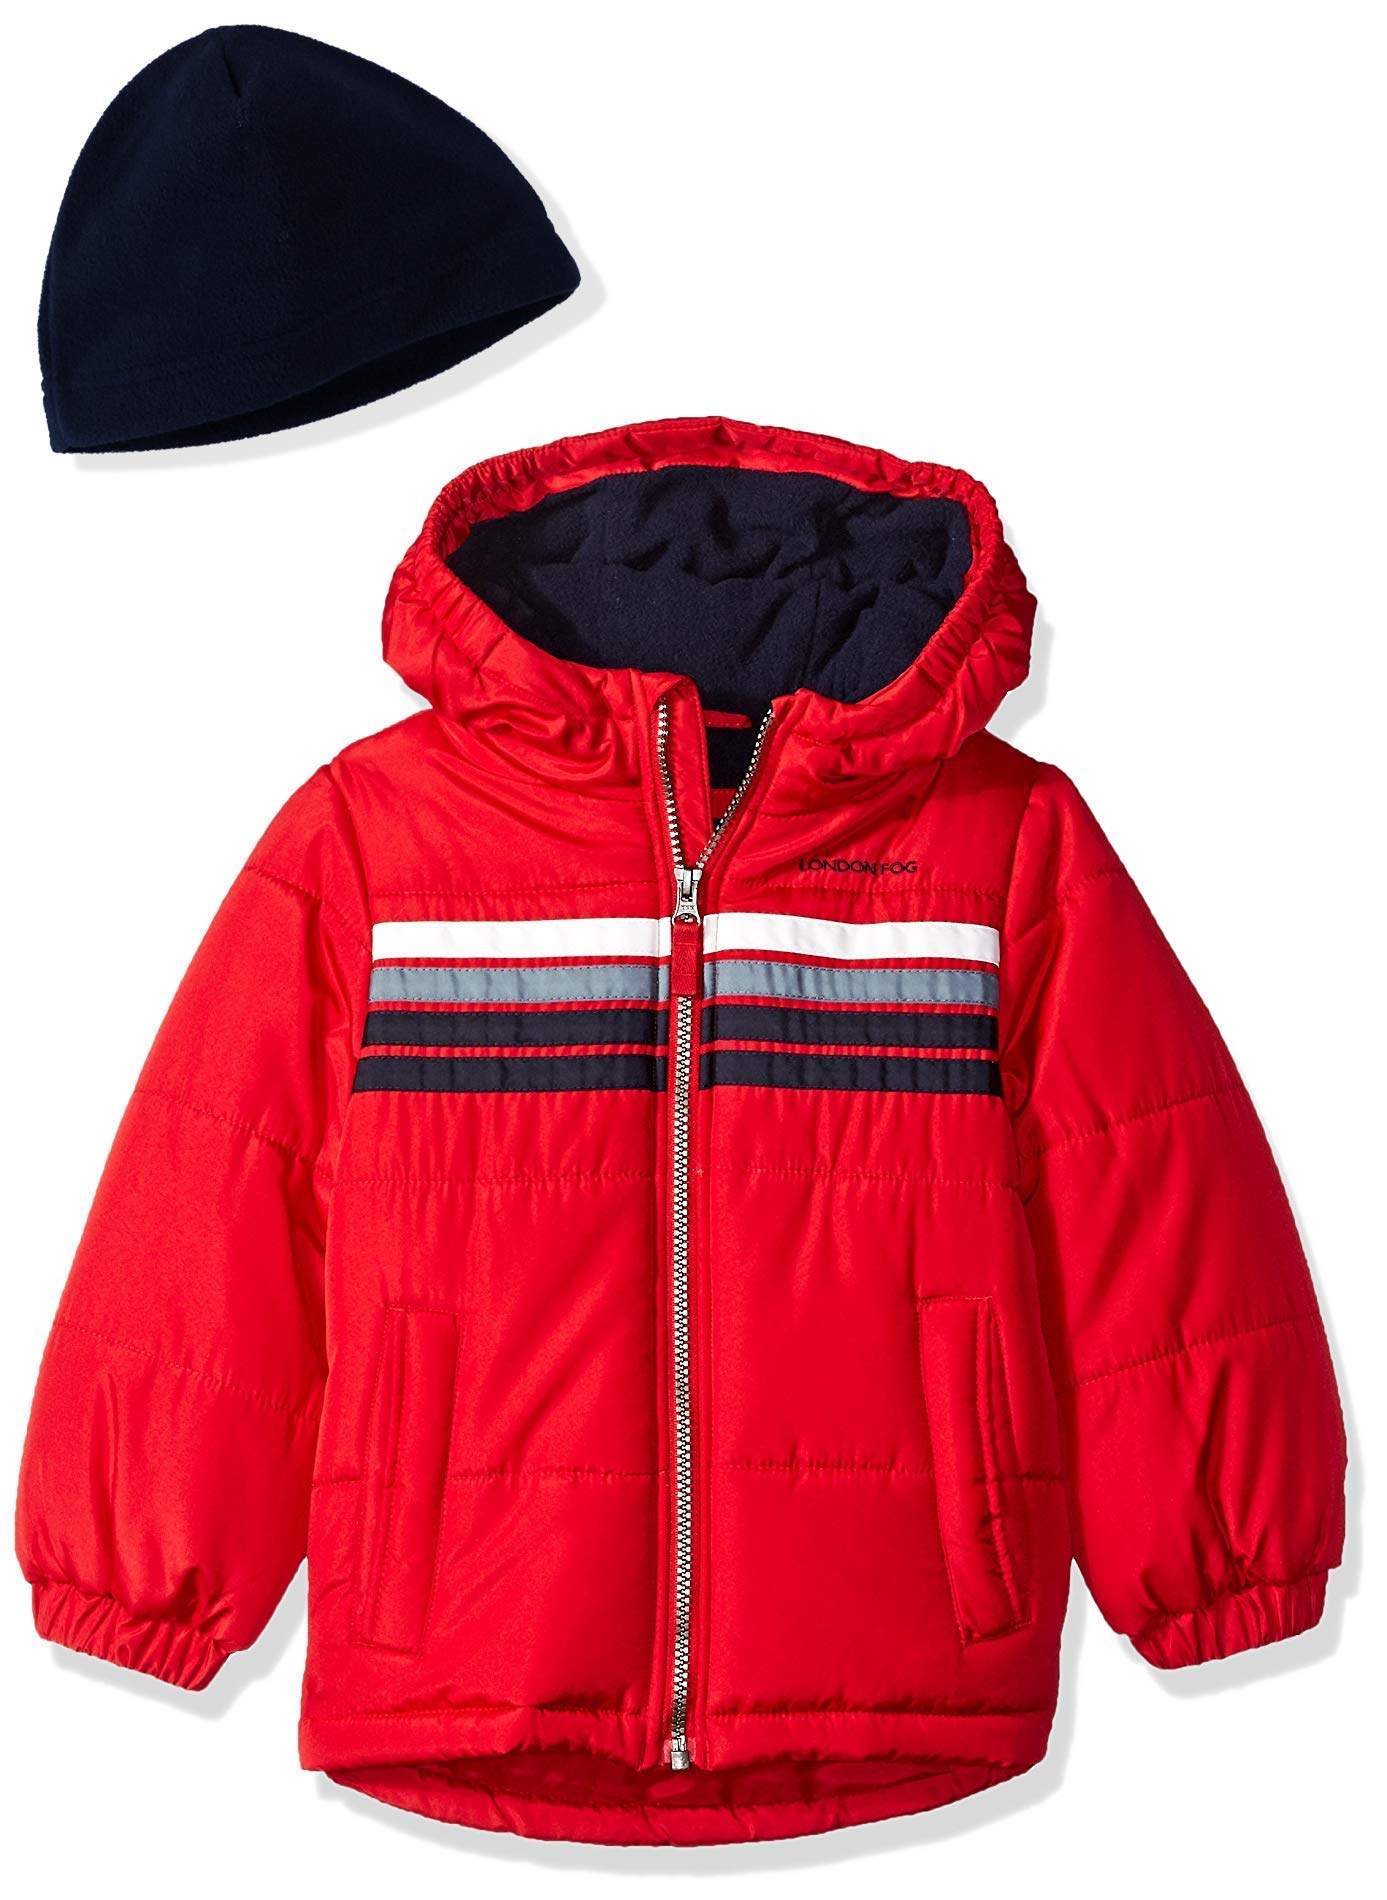 London Fog Boys' Little Heavyweight Puffer Jacket with Beanie, Real red, 5/6